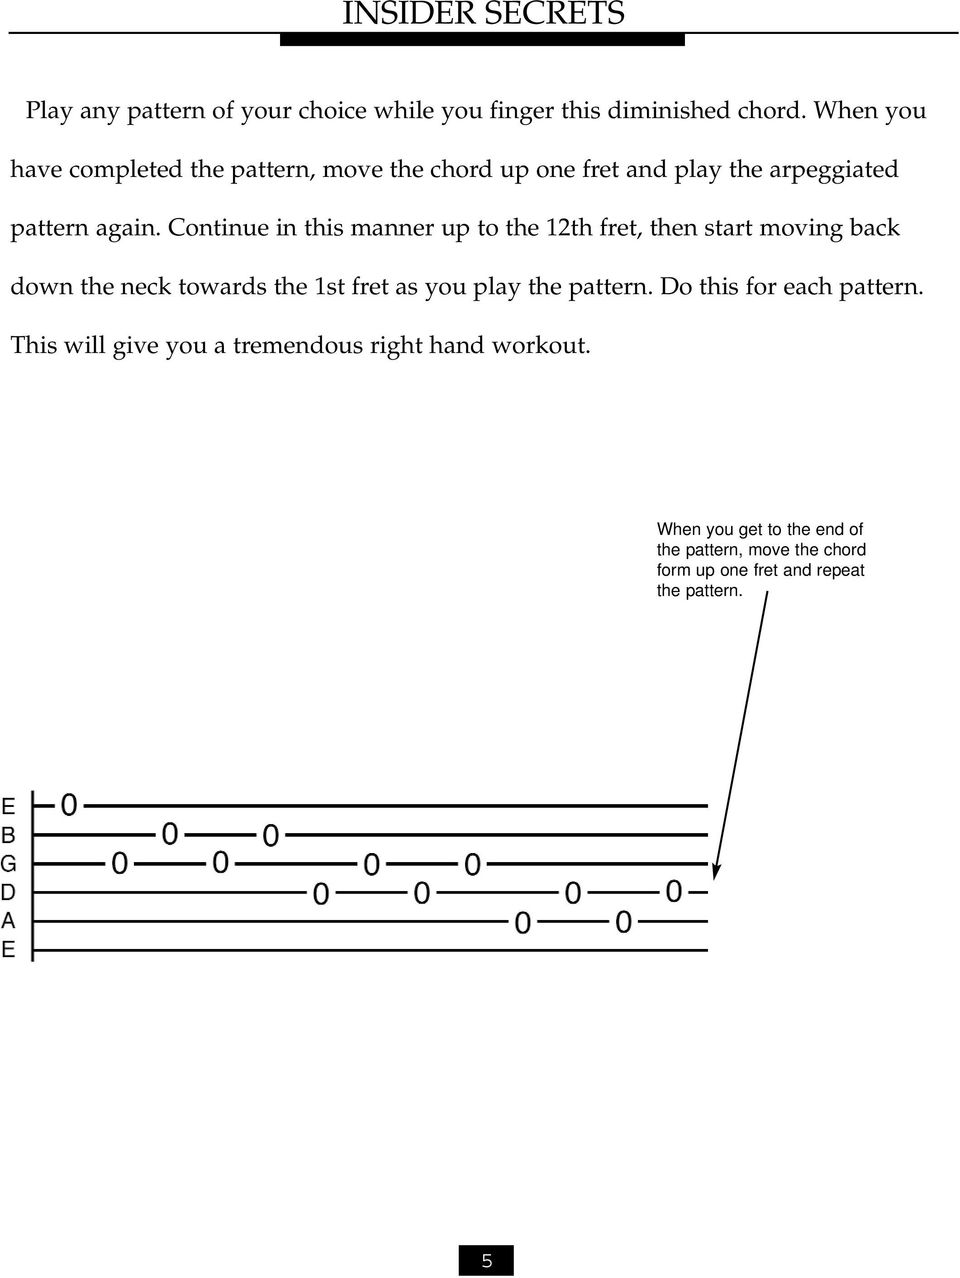 Continue in this manner up to the 12th fret, then start moving back down the neck towards the 1st fret as you play the